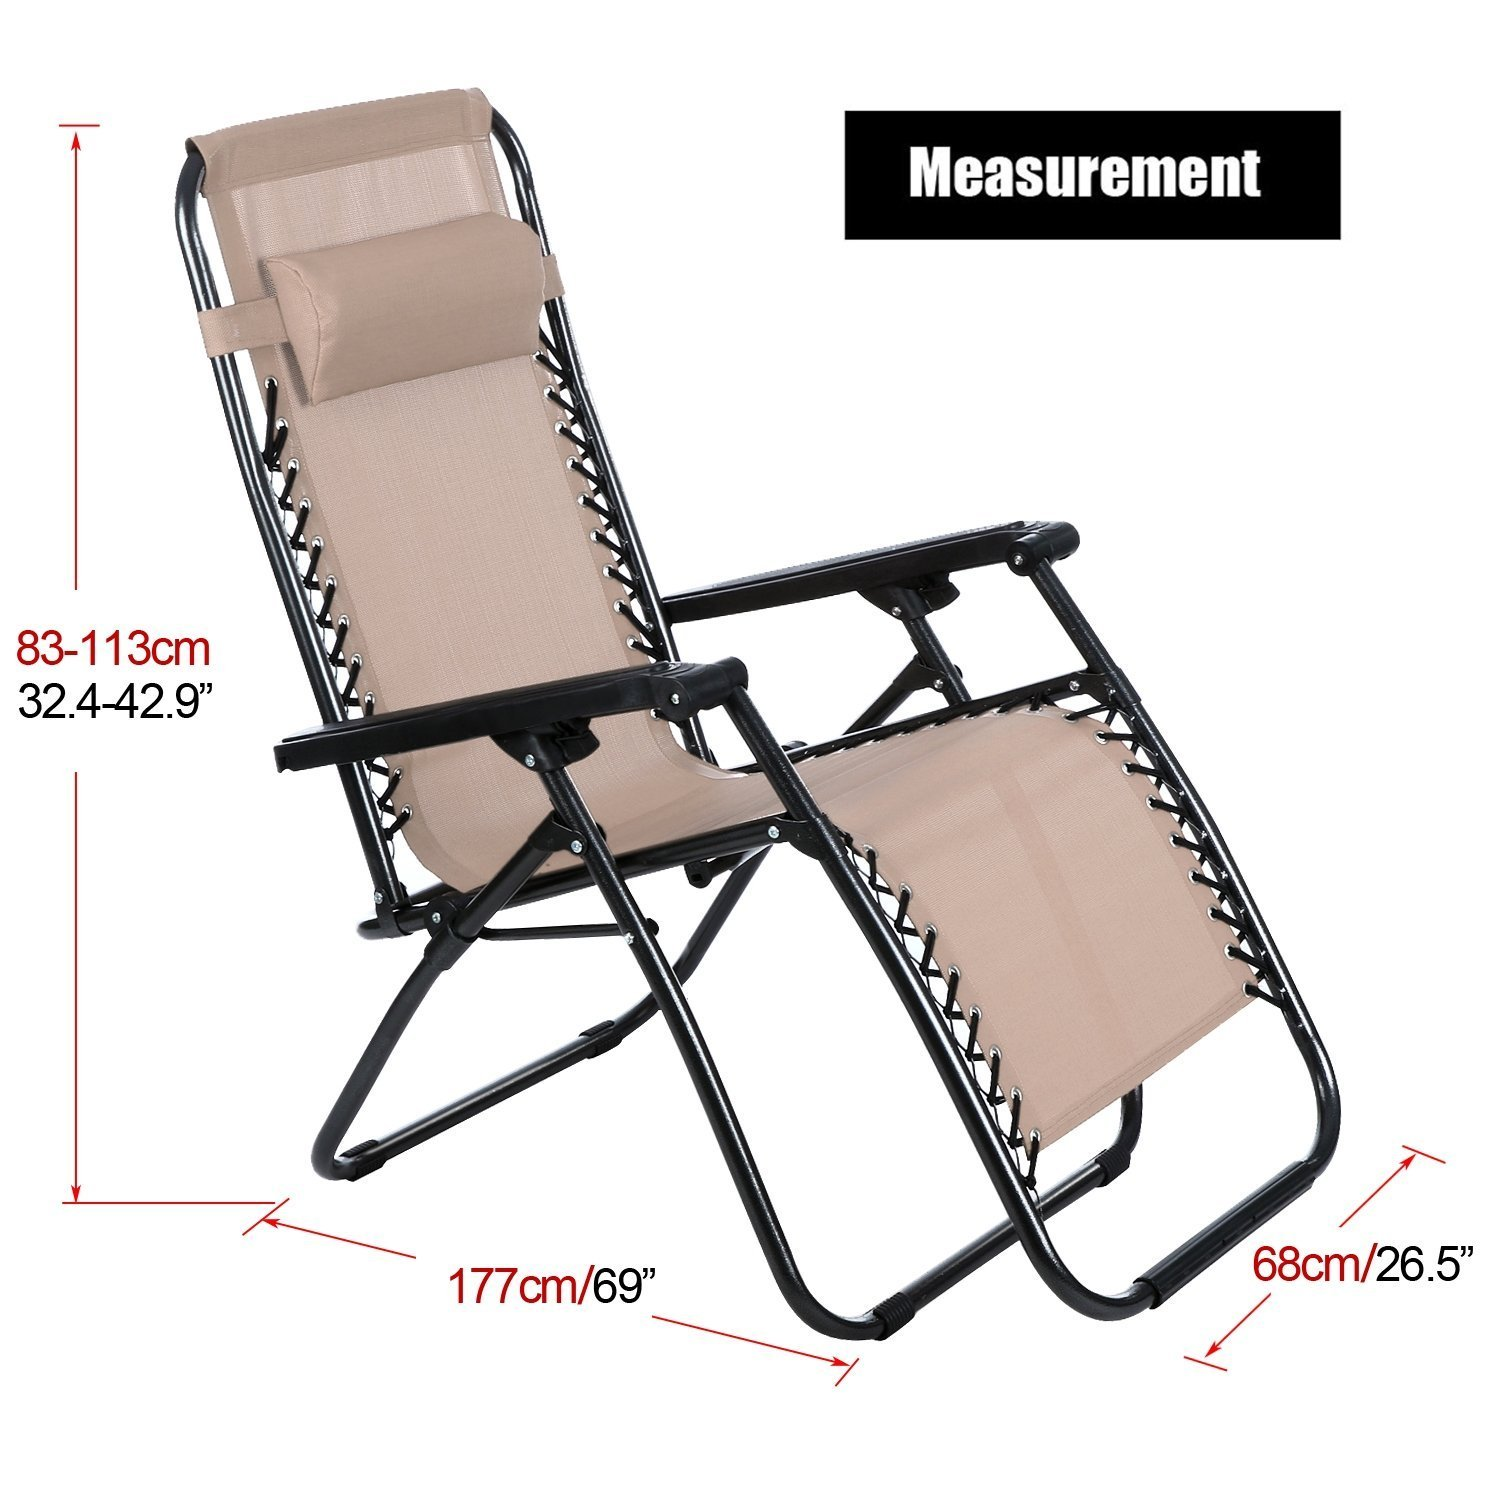 Amazon.com : Hindom Outdoor Folding Lounge Chair, Zero Gravity ... on leather lounge chairs, accent chairs, plastic lounge chairs, beach lounge chairs, office chairs, adirondack chairs, leopard print chairs, bedroom chaise chairs, cool chairs, outdoor lounge chairs, rattan lounge chairs, oversized chairs, living room chairs, relaxing chairs, high back lounge chairs, indoor lounge chairs, chaise beach chairs, wicker chairs, pool chairs, dining chairs,